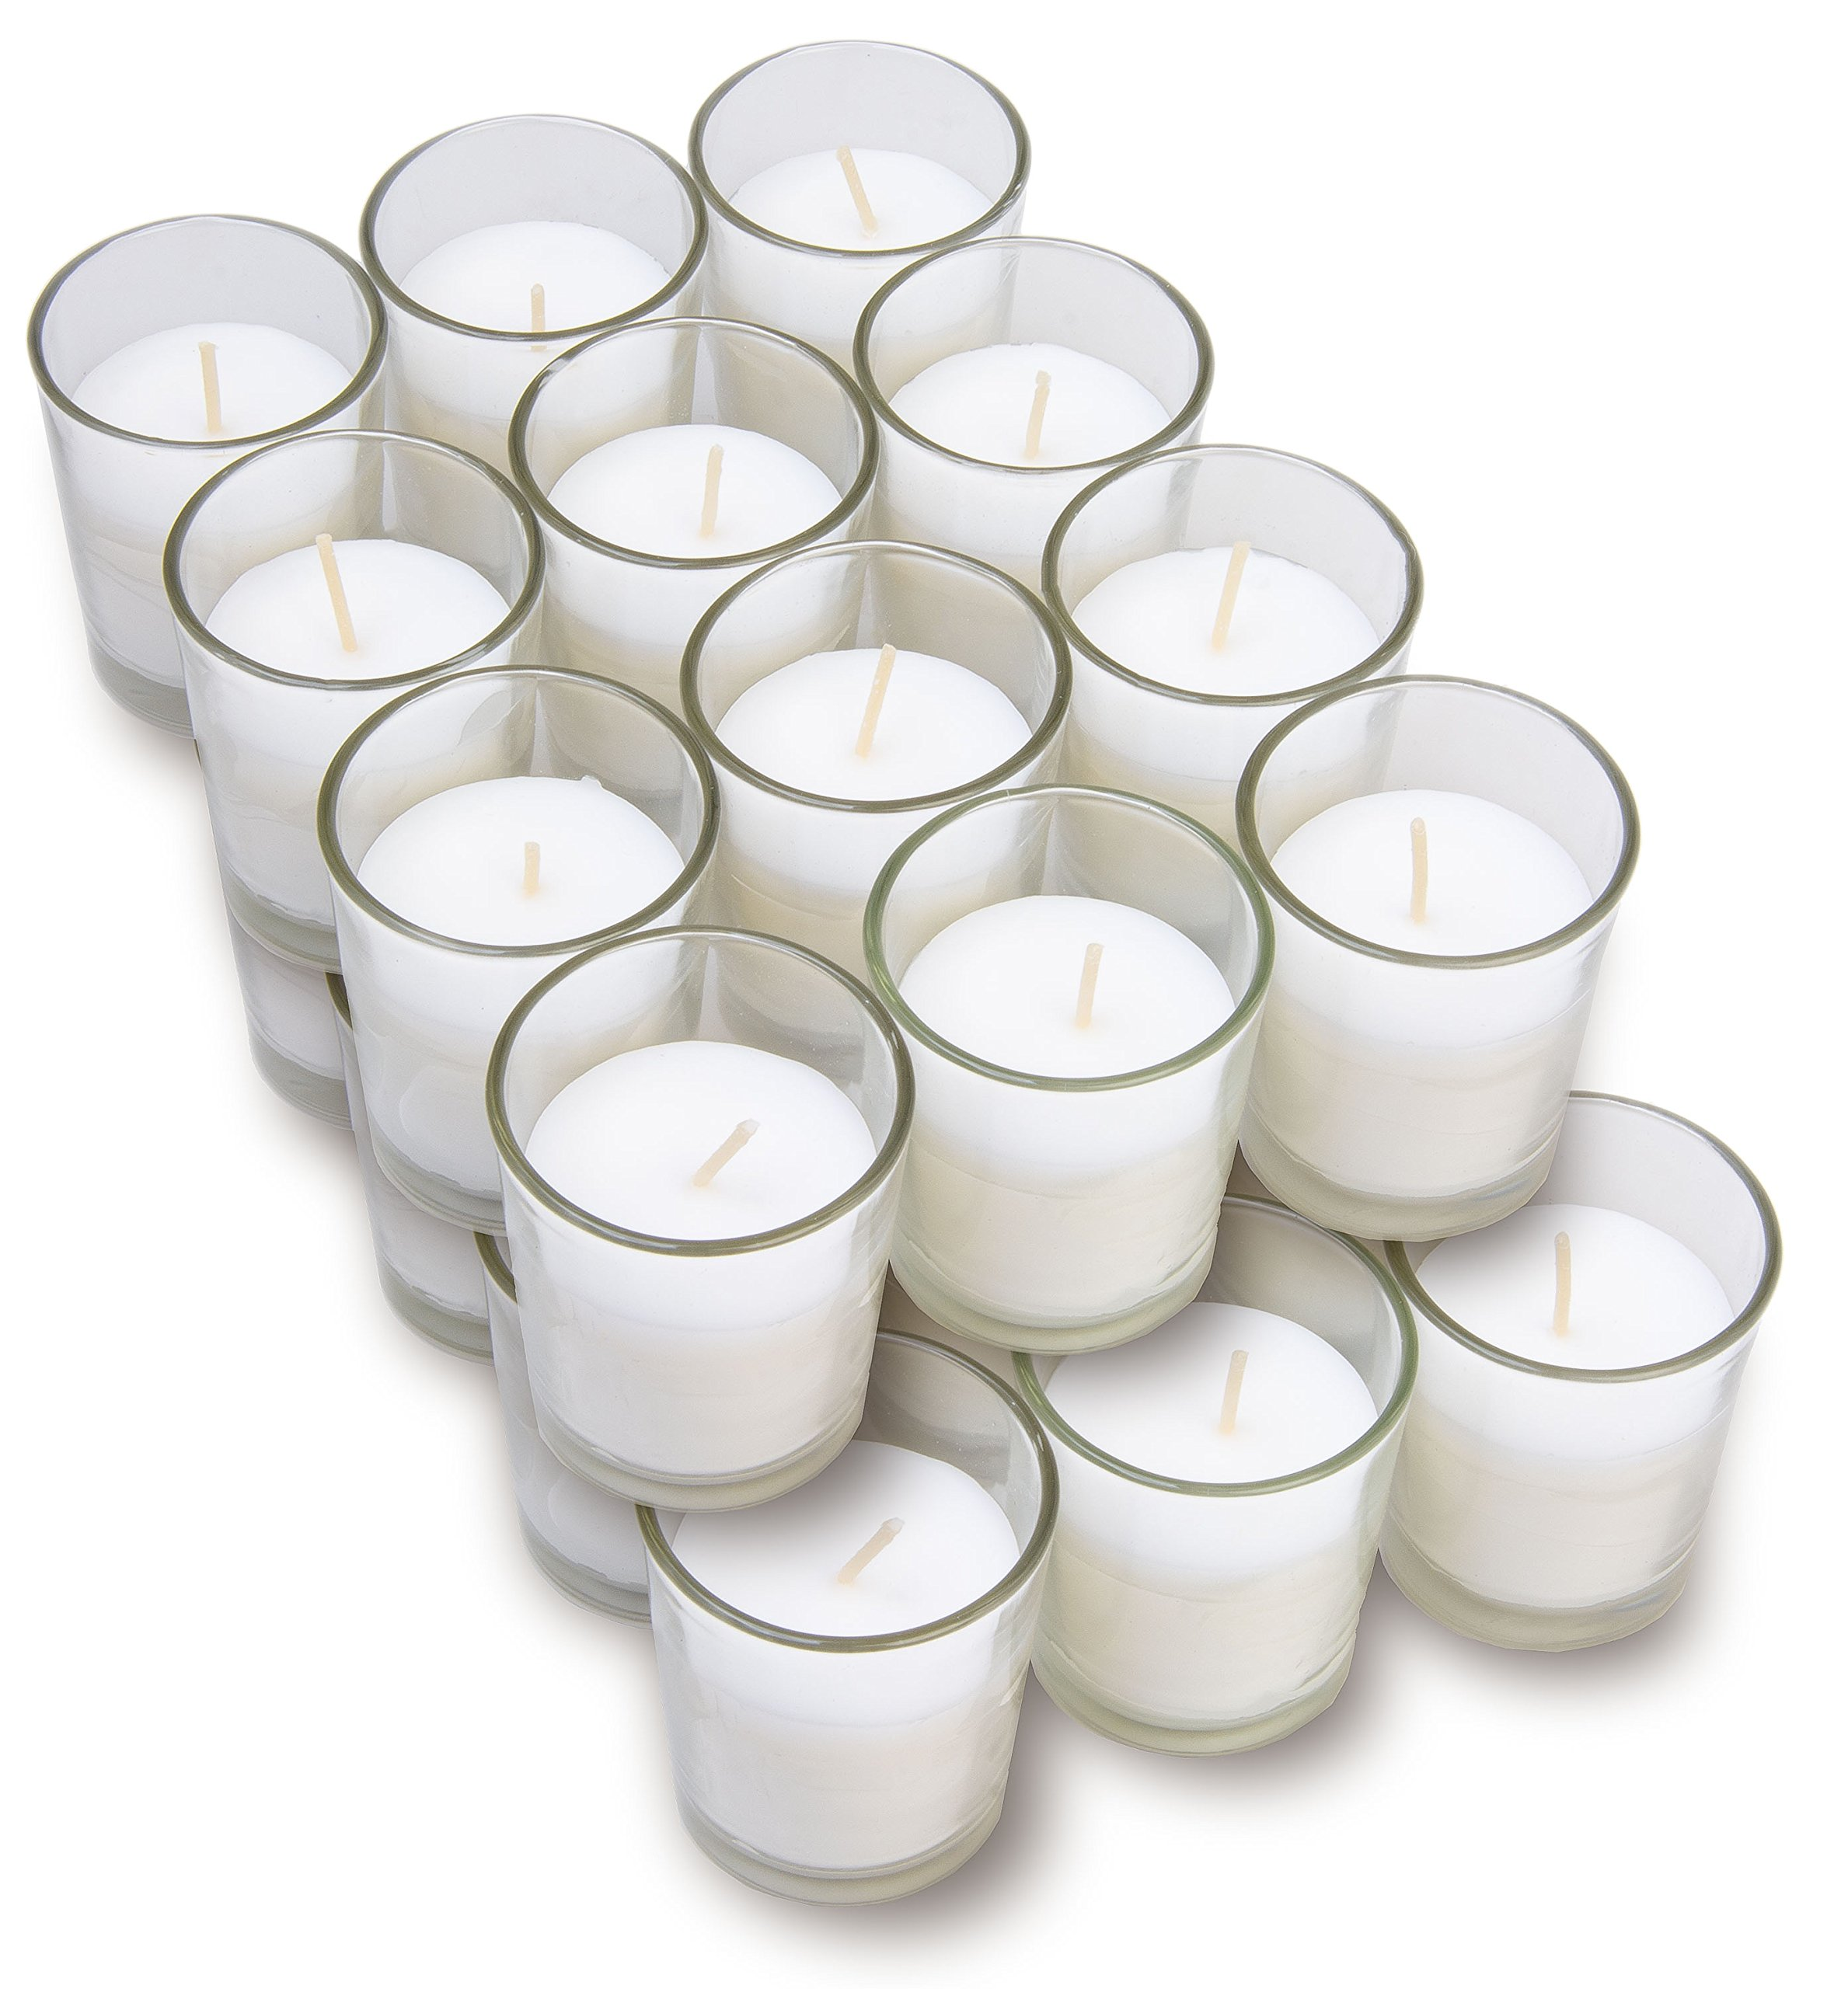 Harmonic Blossom Glass Votives 24 Pack - Premium White Unscented Votive Candles in Clear Elegant Holders - 15 Hour Long Lasting Burn Time - For Weddings, Parties and Event Decoration Centerpieces by Harmonic Blossom